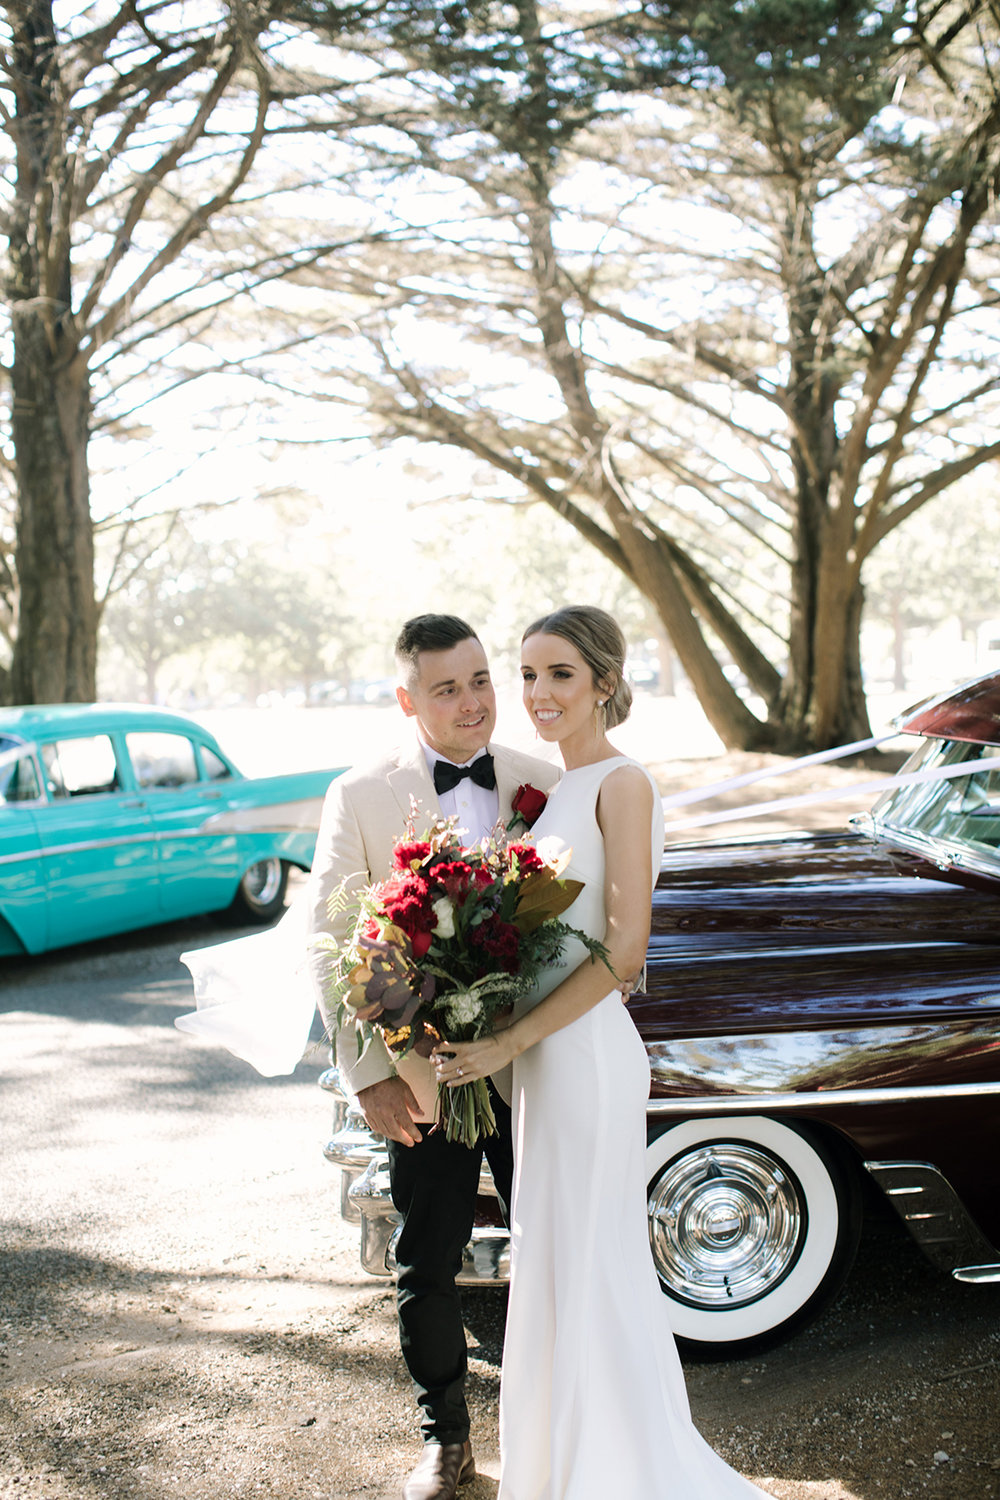 I_Got_You_Babe_Co._Megan_Andrew_Country_Property_Wedding_Victoria0074.JPG